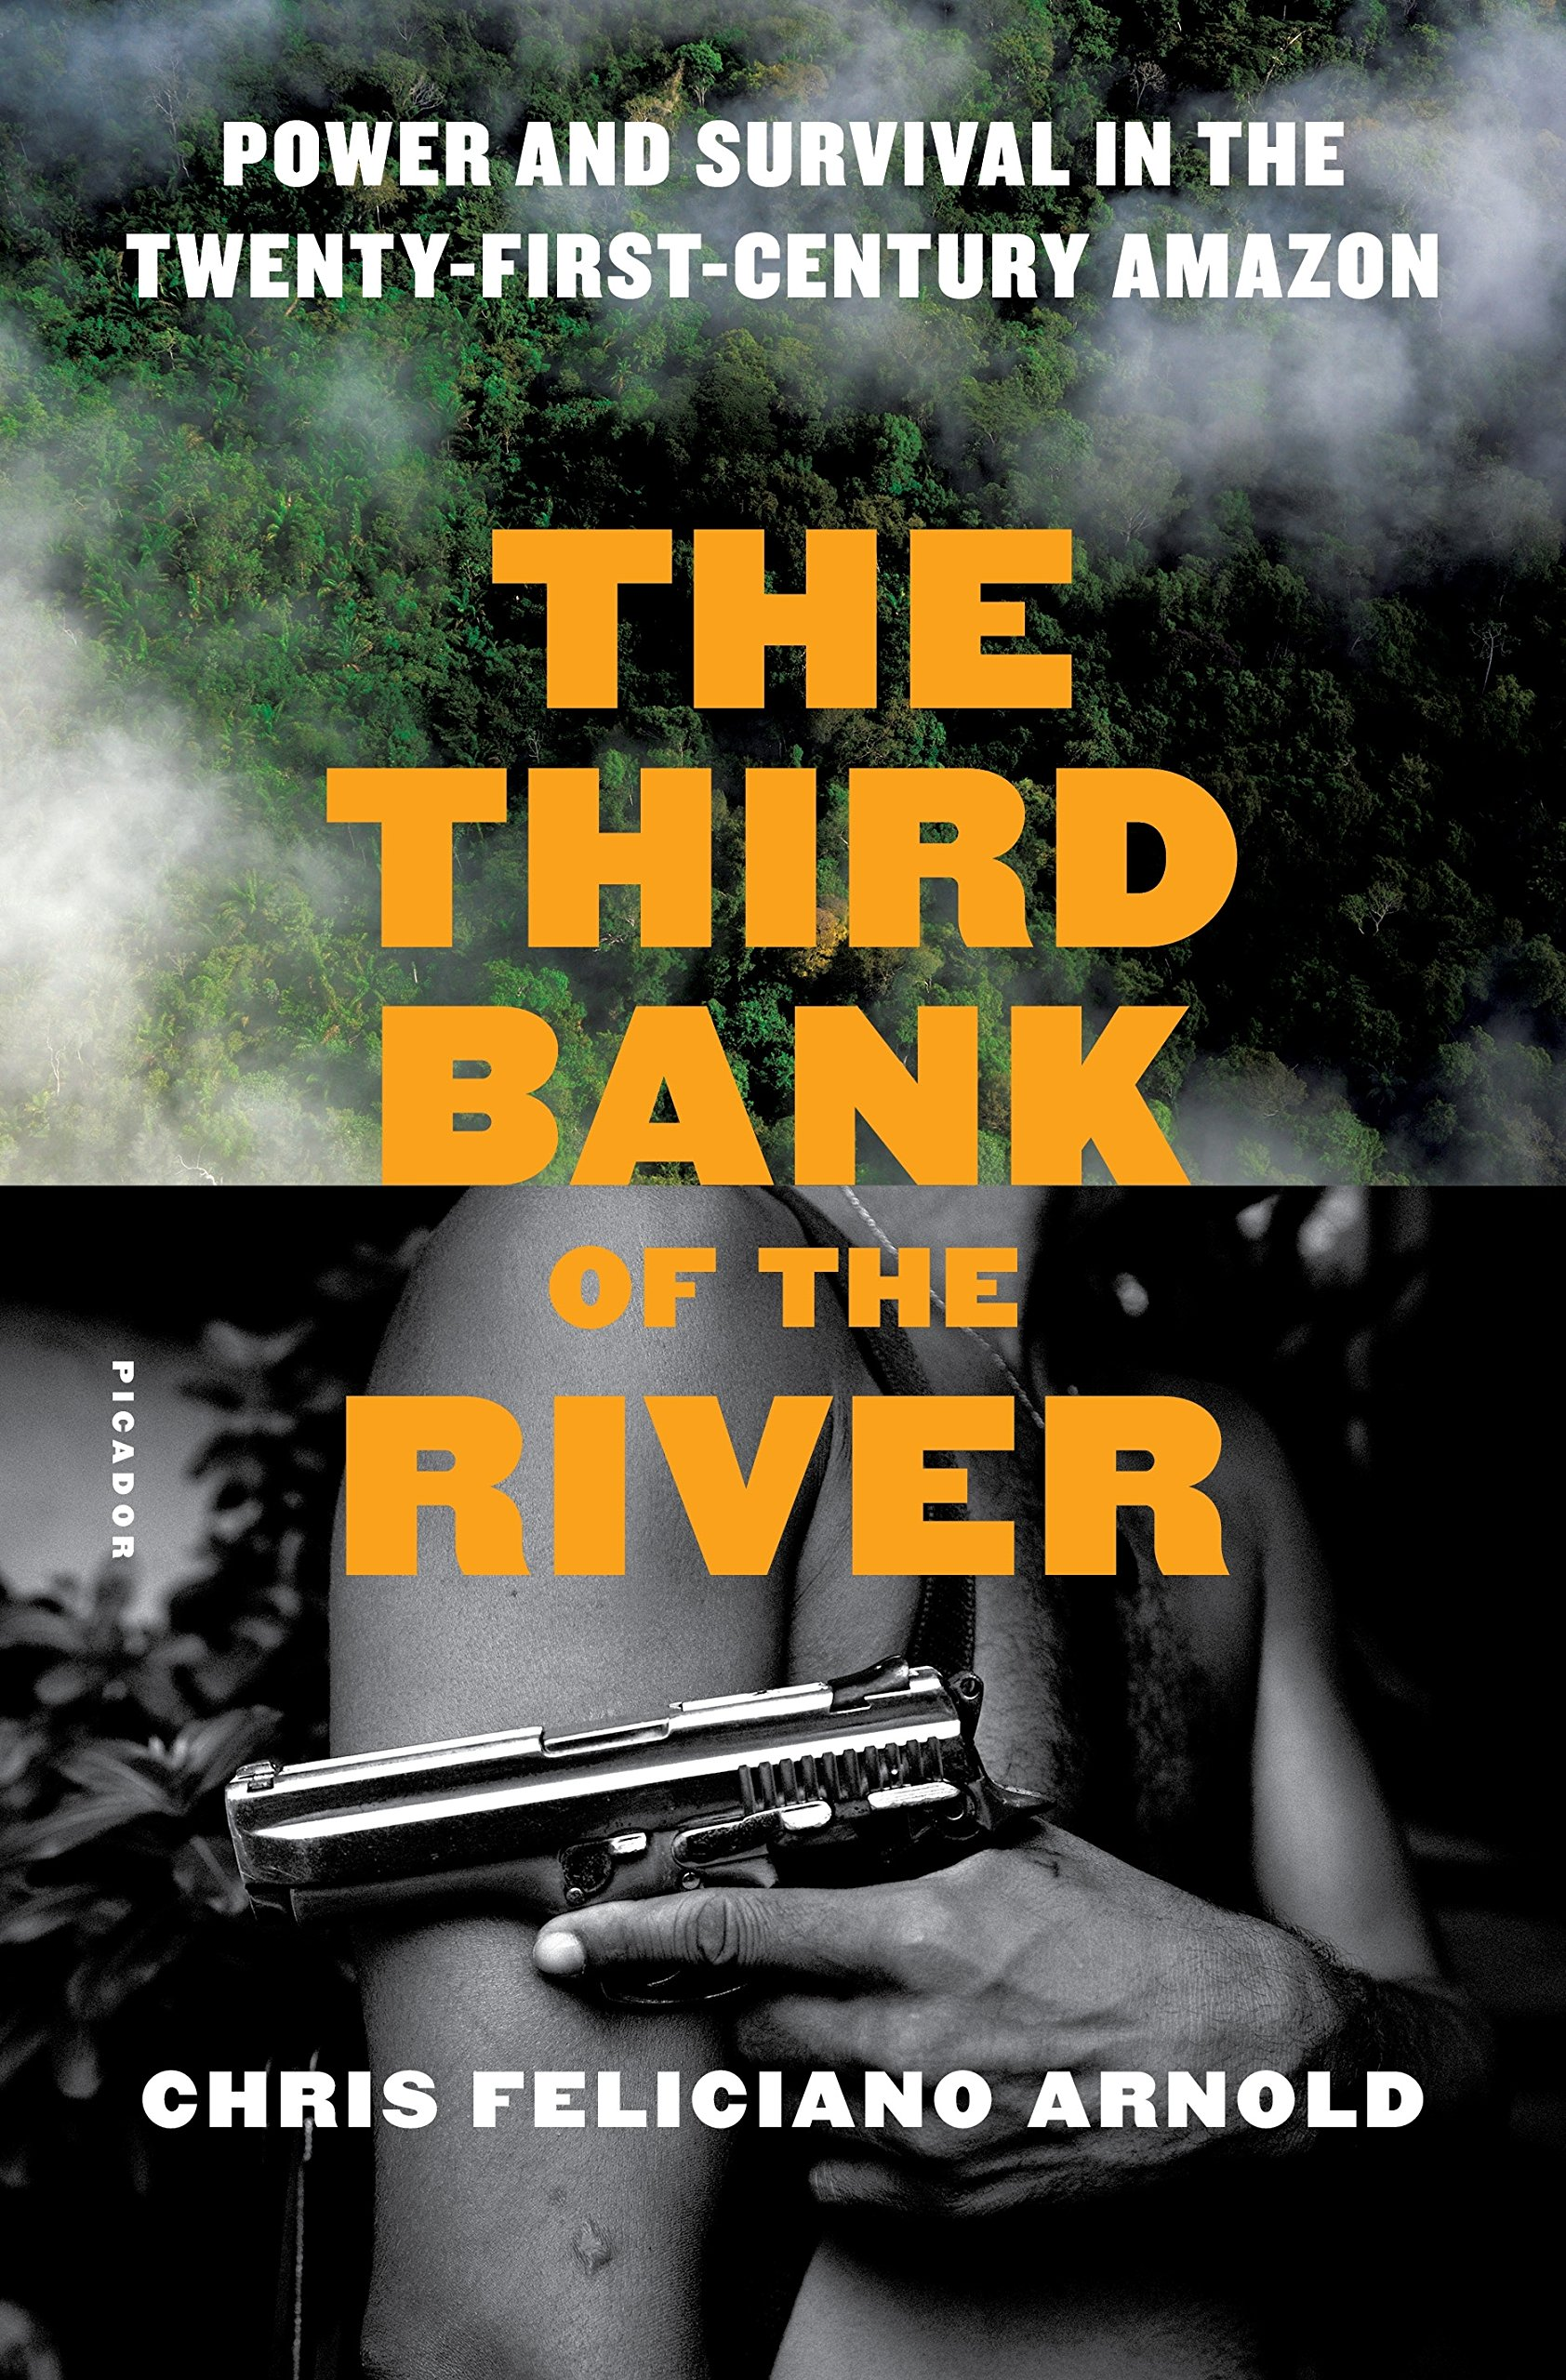 The Third Bank of the River: Power and Survival in the Twenty-First-Century  Amazon: Chris Feliciano Arnold: 9781250098948: Amazon.com: Books